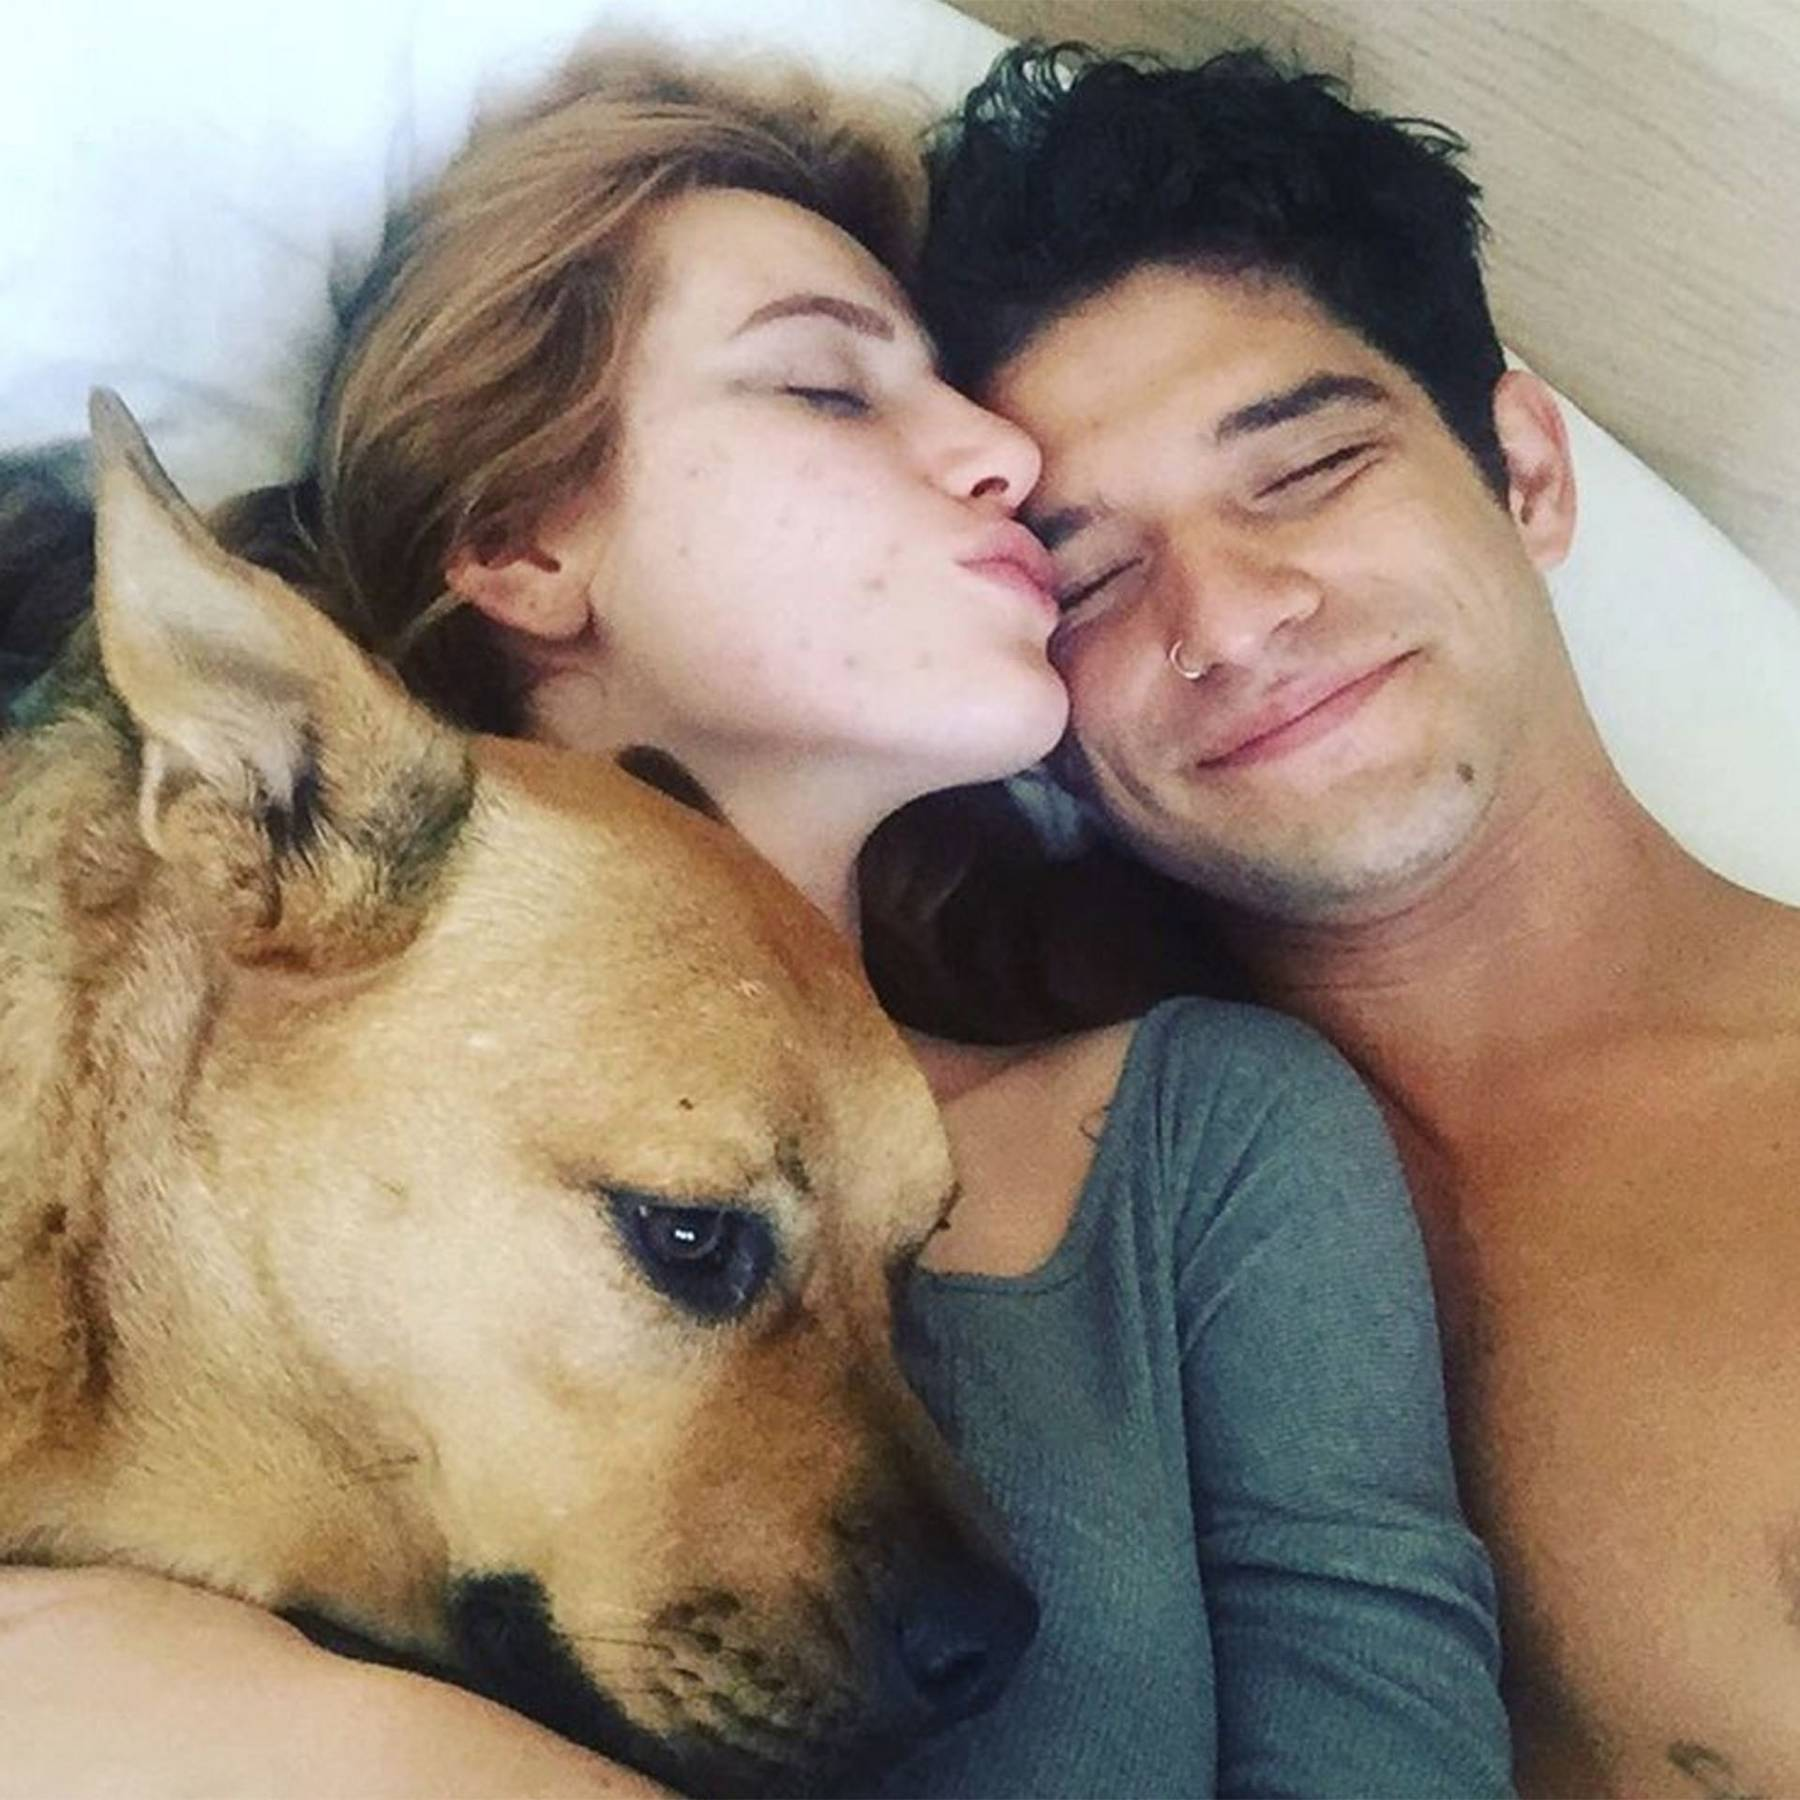 Bella Thorne Calls Tyler Posey Her Mancrushmonday As She Straddles